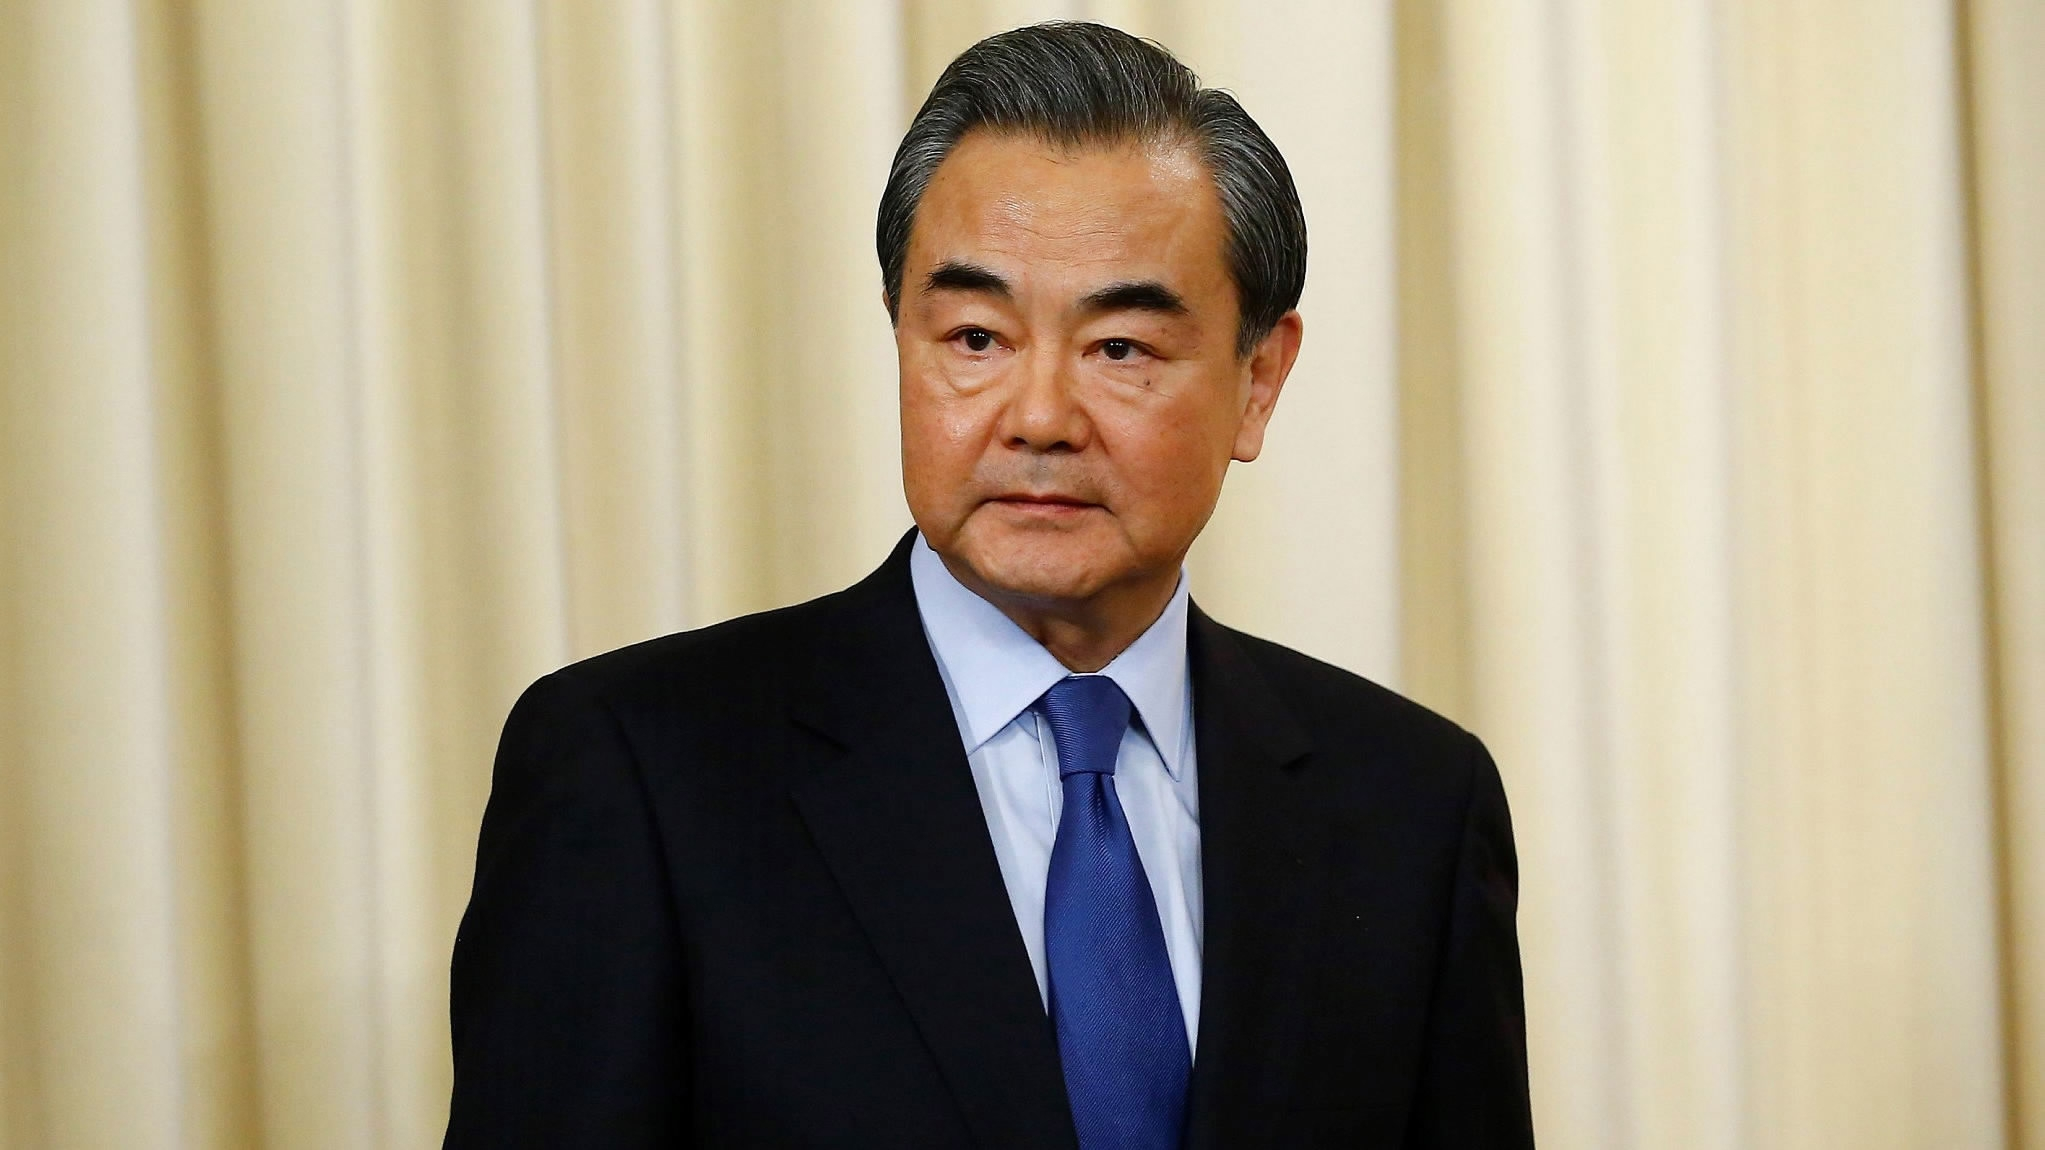 China, EU aim to reach investment agreement this year: Chinese FM